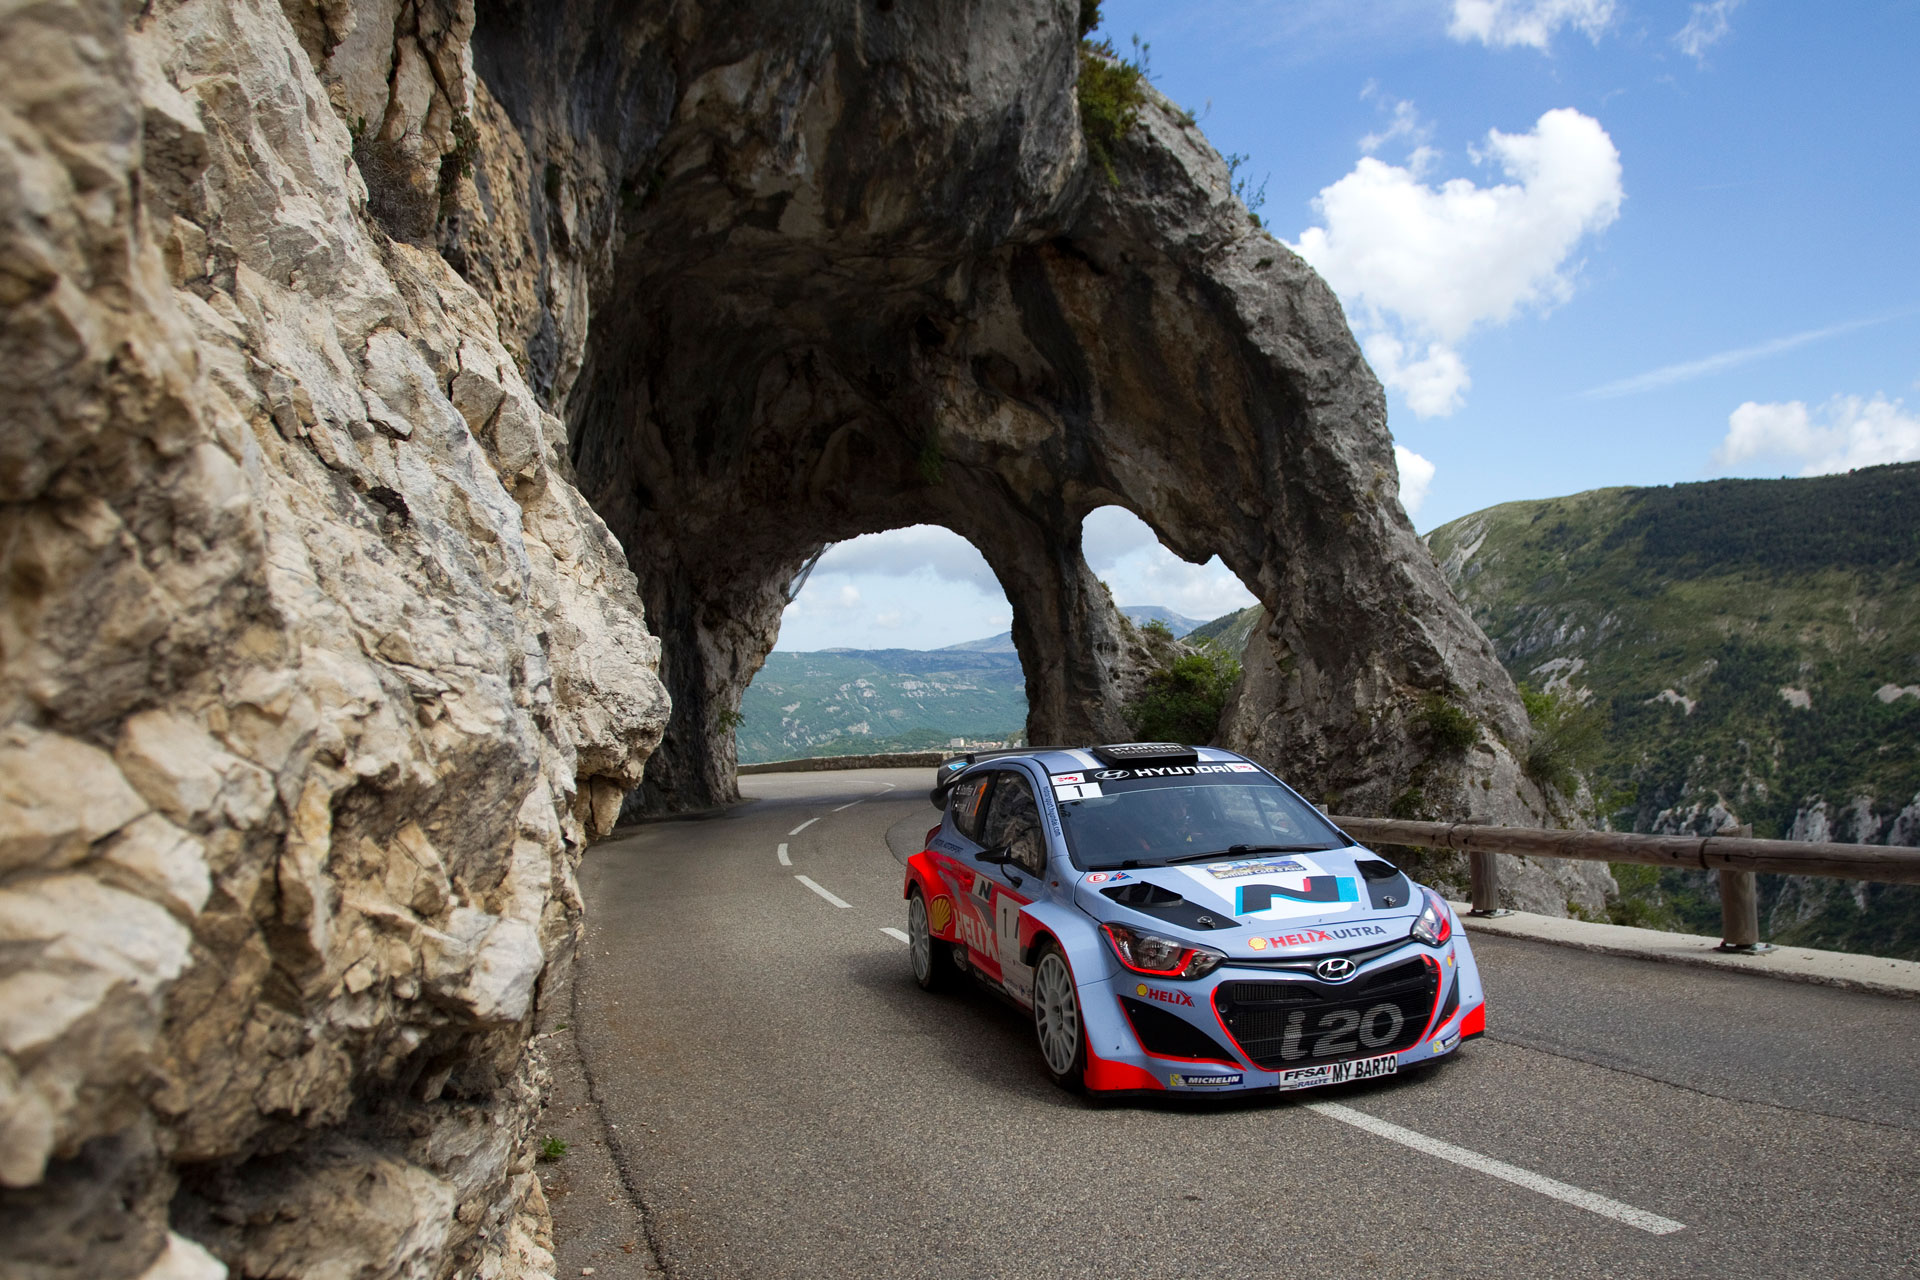 Bouffier Wins Rallye Antibes While On Test Duty For